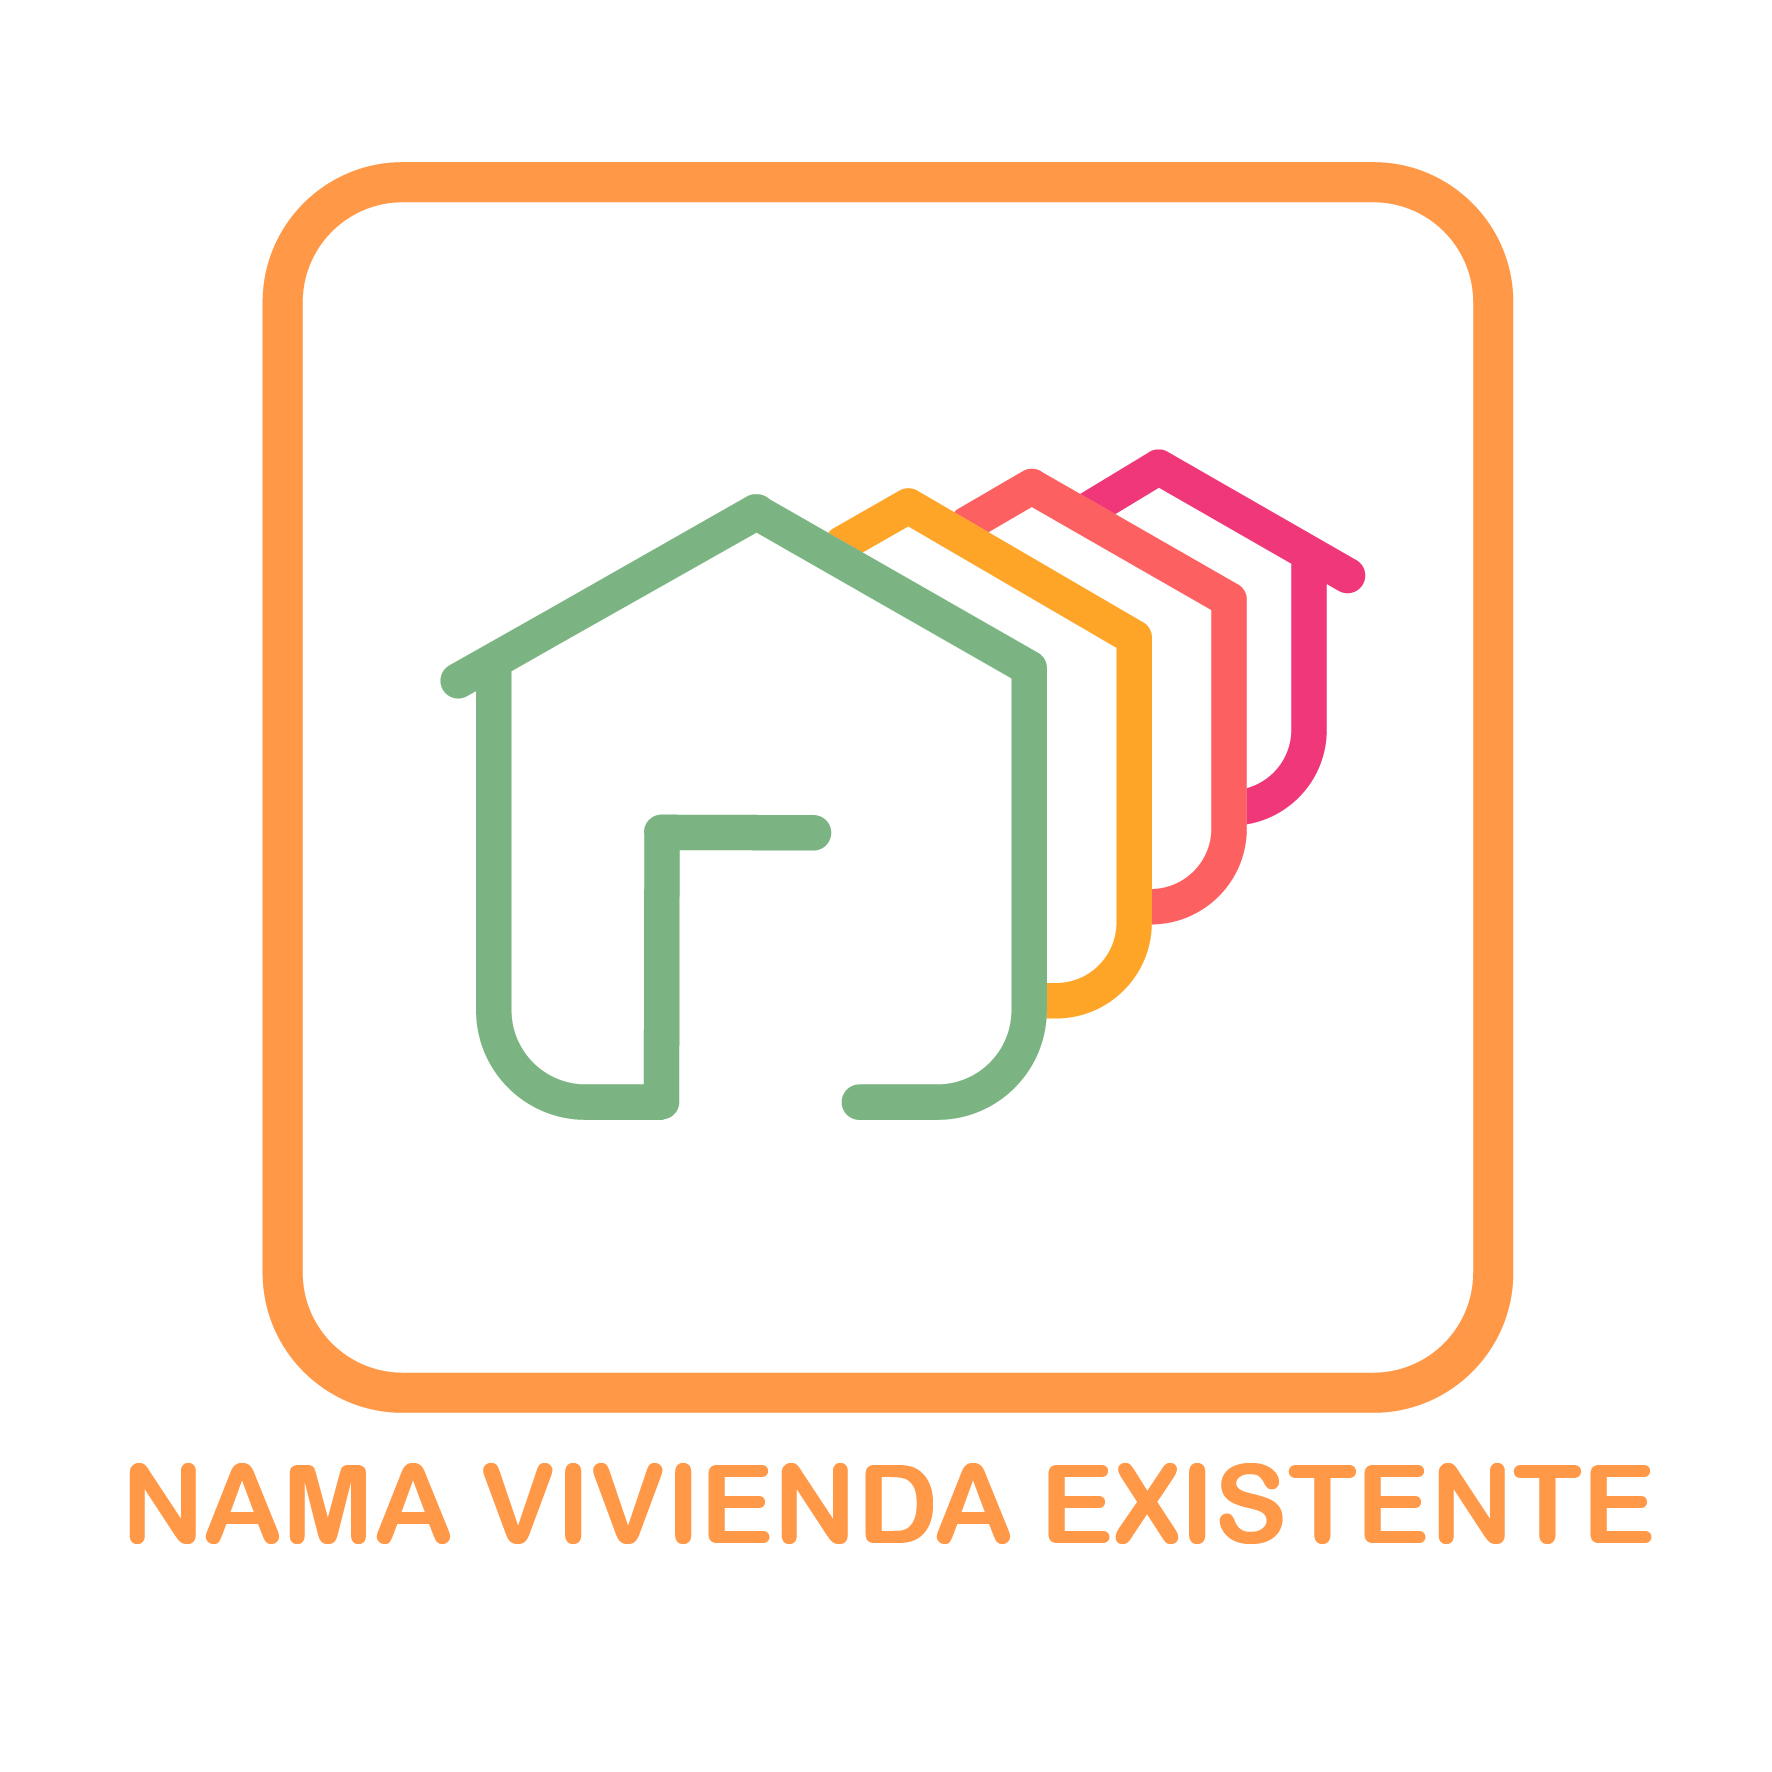 Icon of 02 NAMA Vivienda Existente